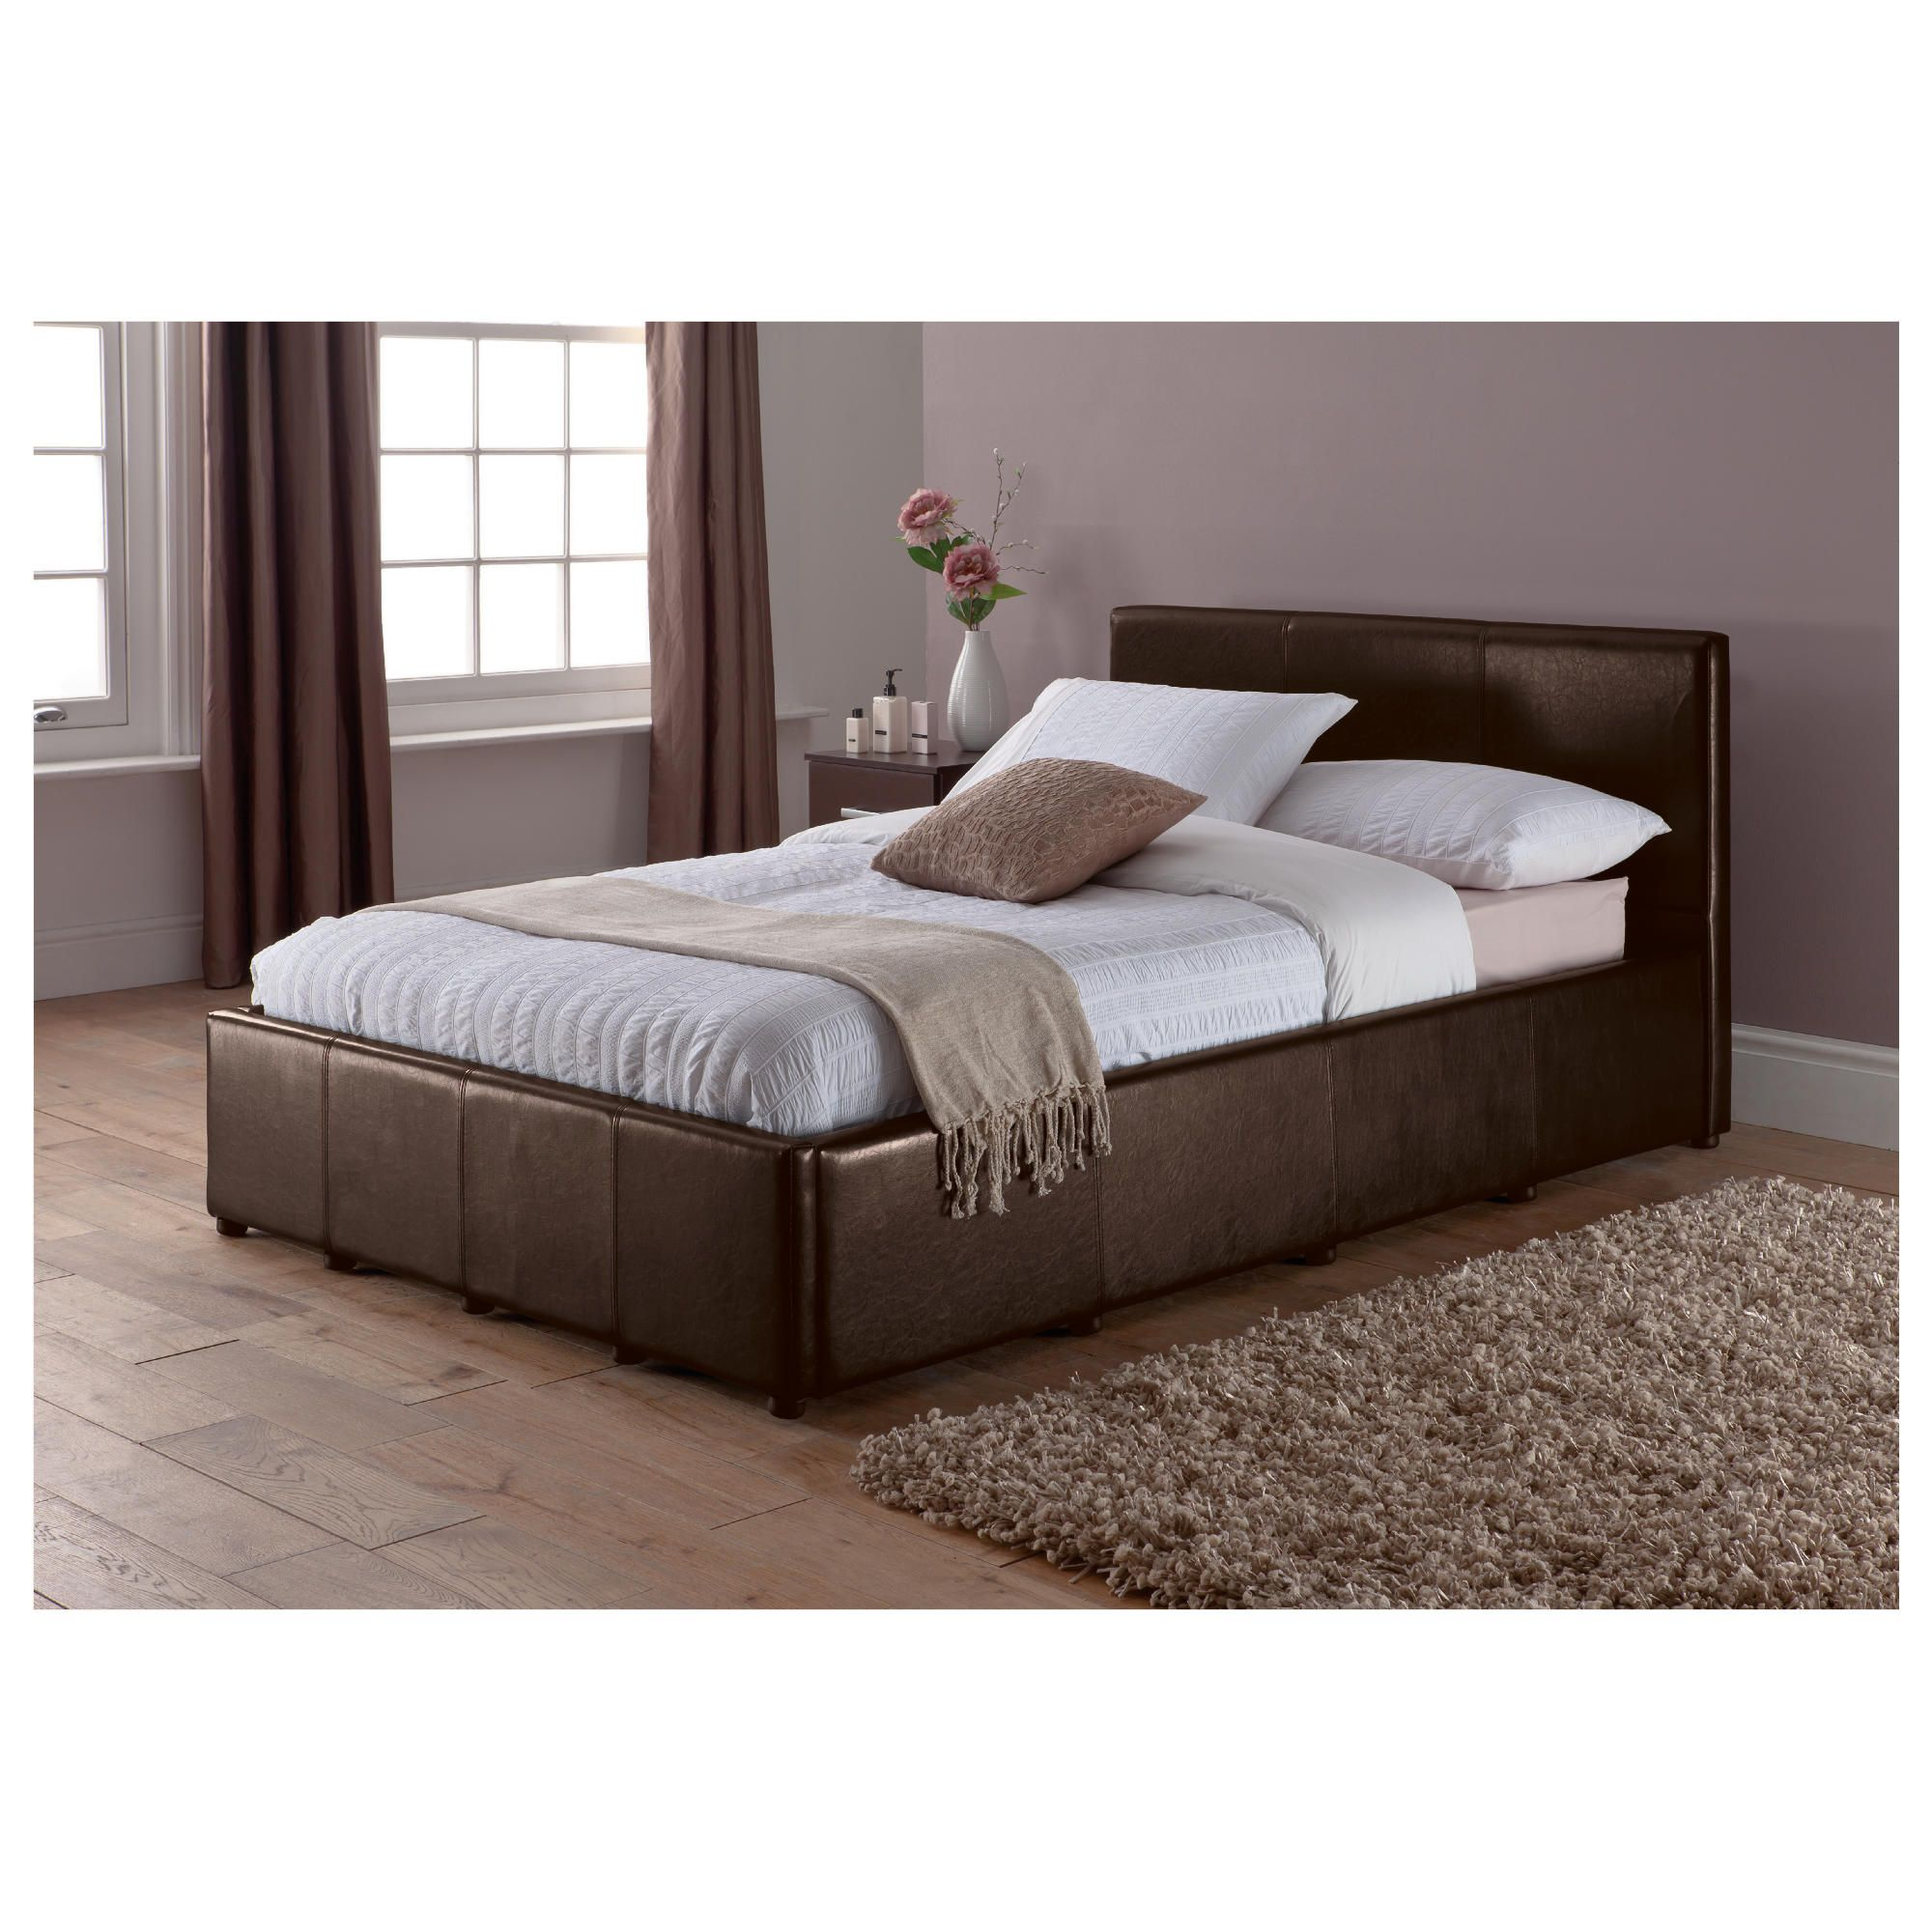 Eden Small Double Faux Leather Ottoman Bed Frame, Brown at Tesco Direct